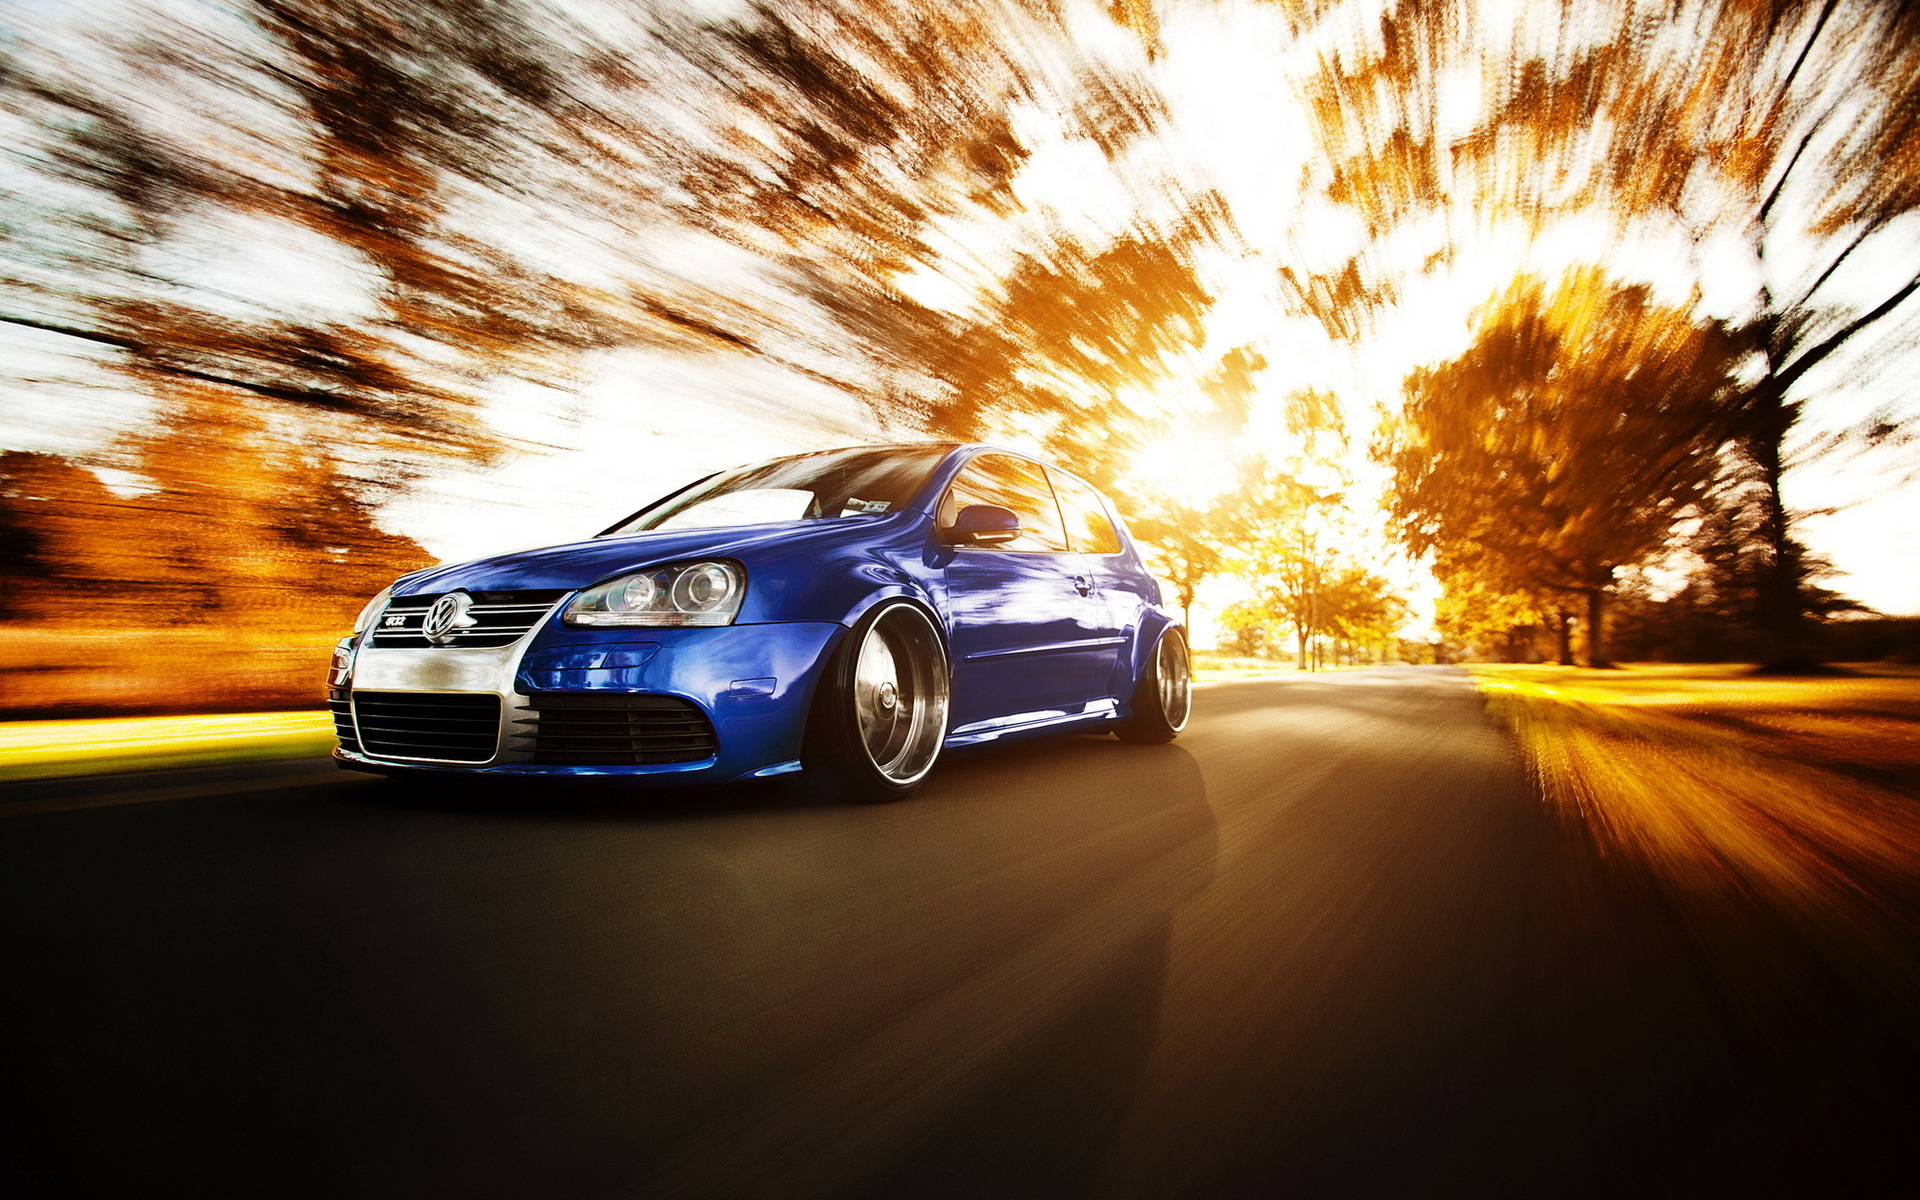 1 Volkswagen R32 HD Wallpapers | Backgrounds - Wallpaper Abyss